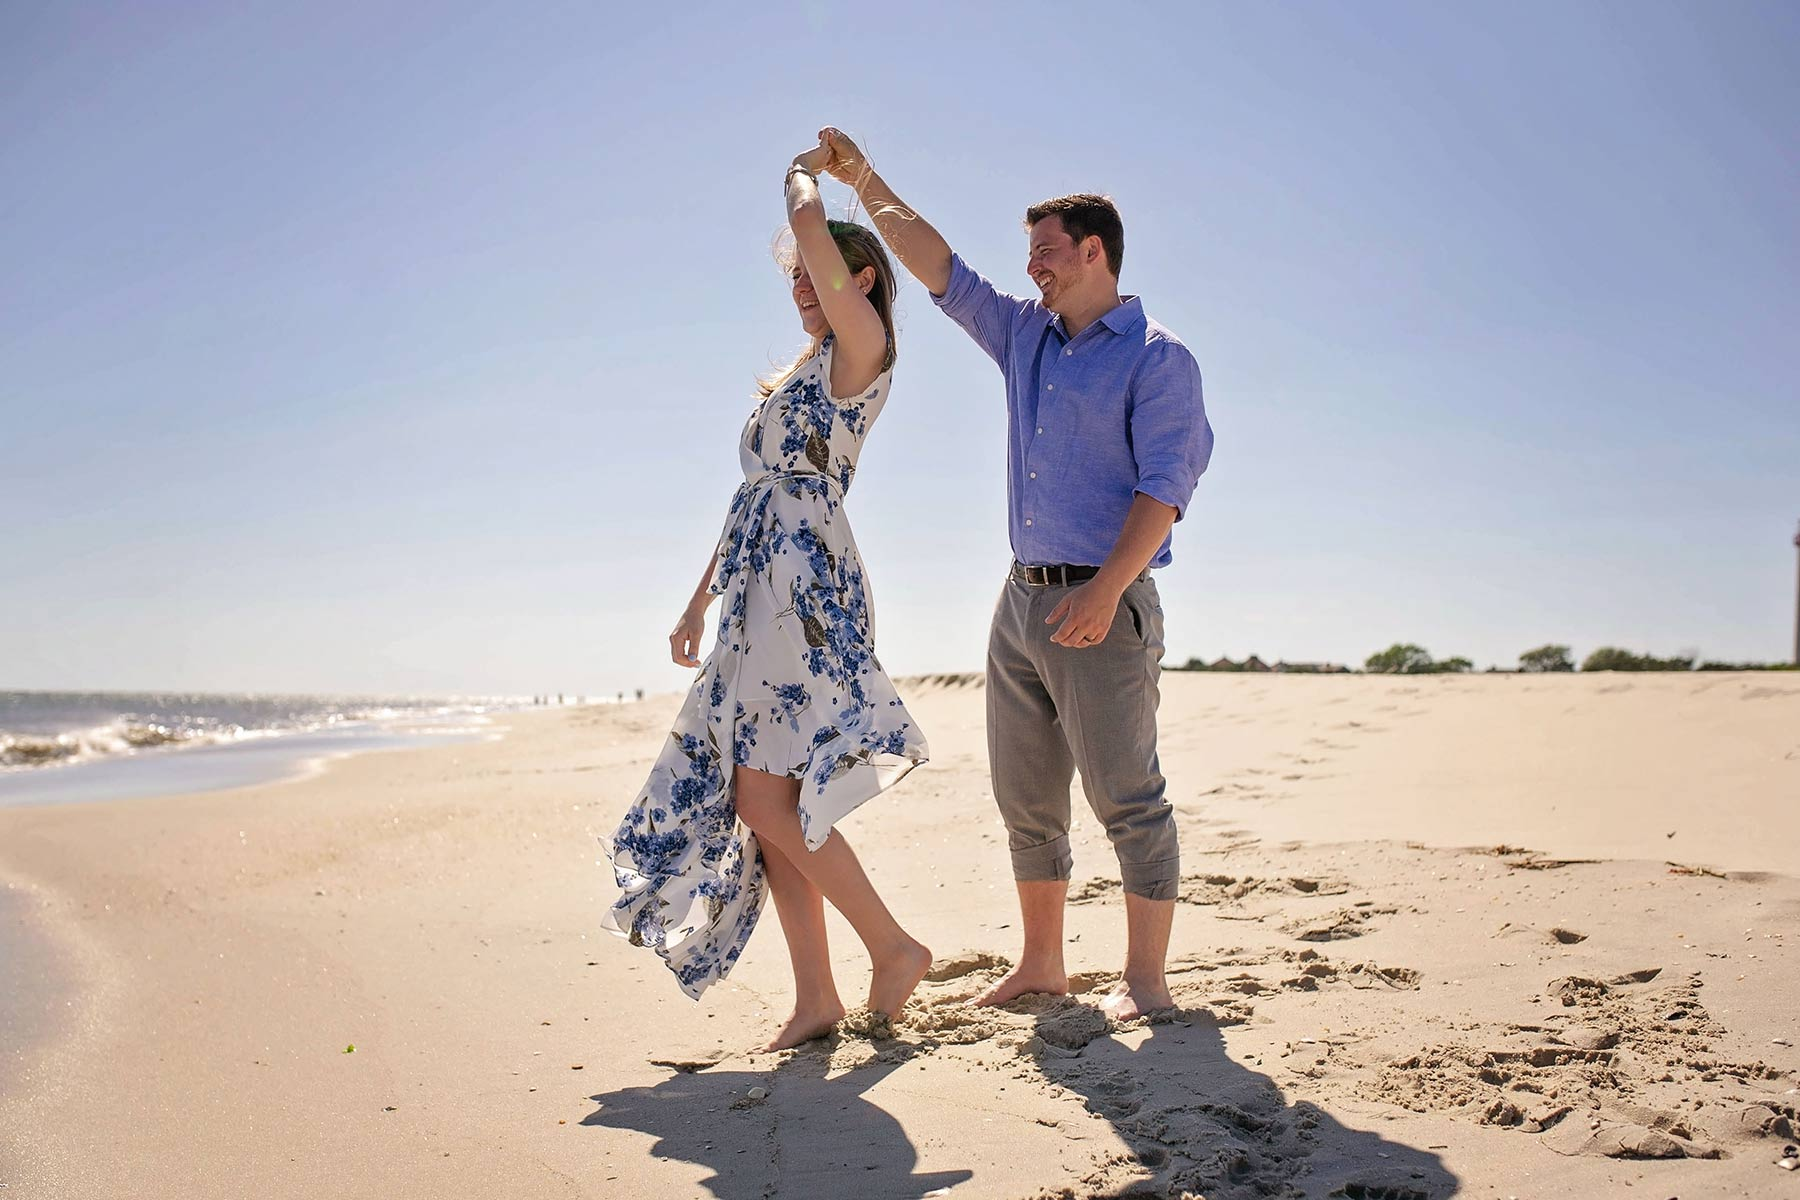 man dances with and twirls woman on the beach